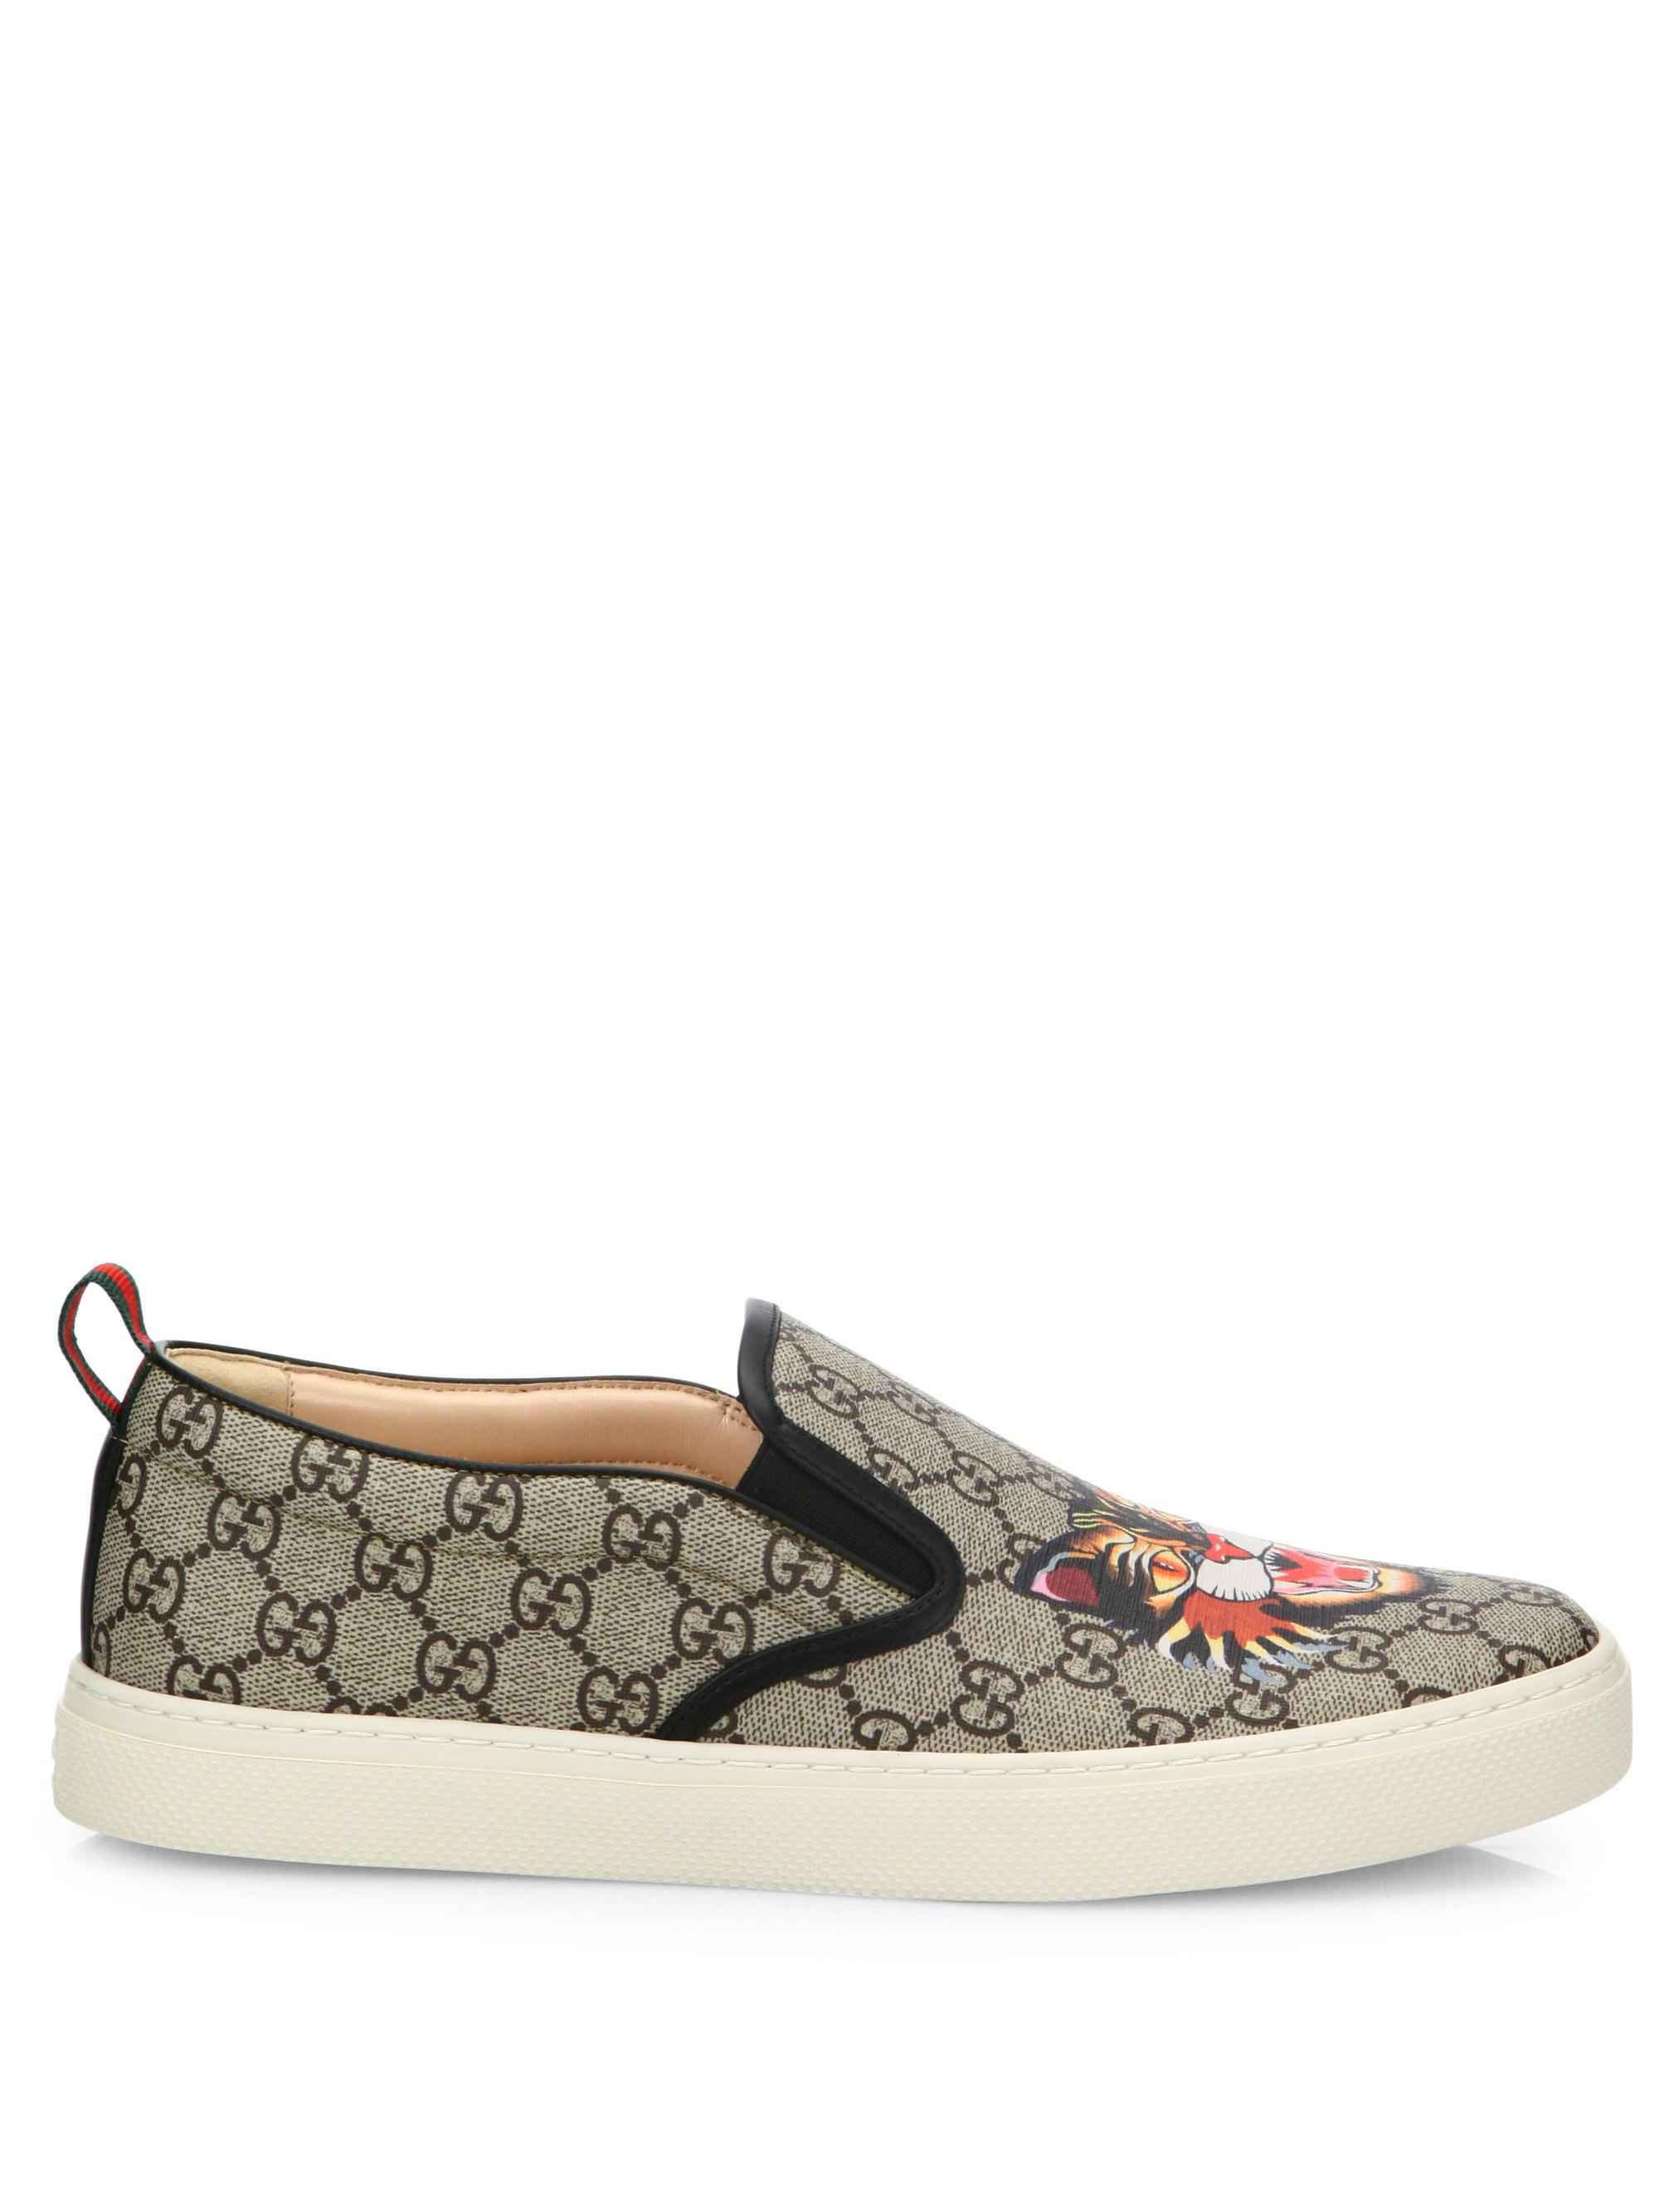 f72291707f9 Lyst - Gucci GG Supreme Angry Cat Slip-on Sneakers in Natural for Men